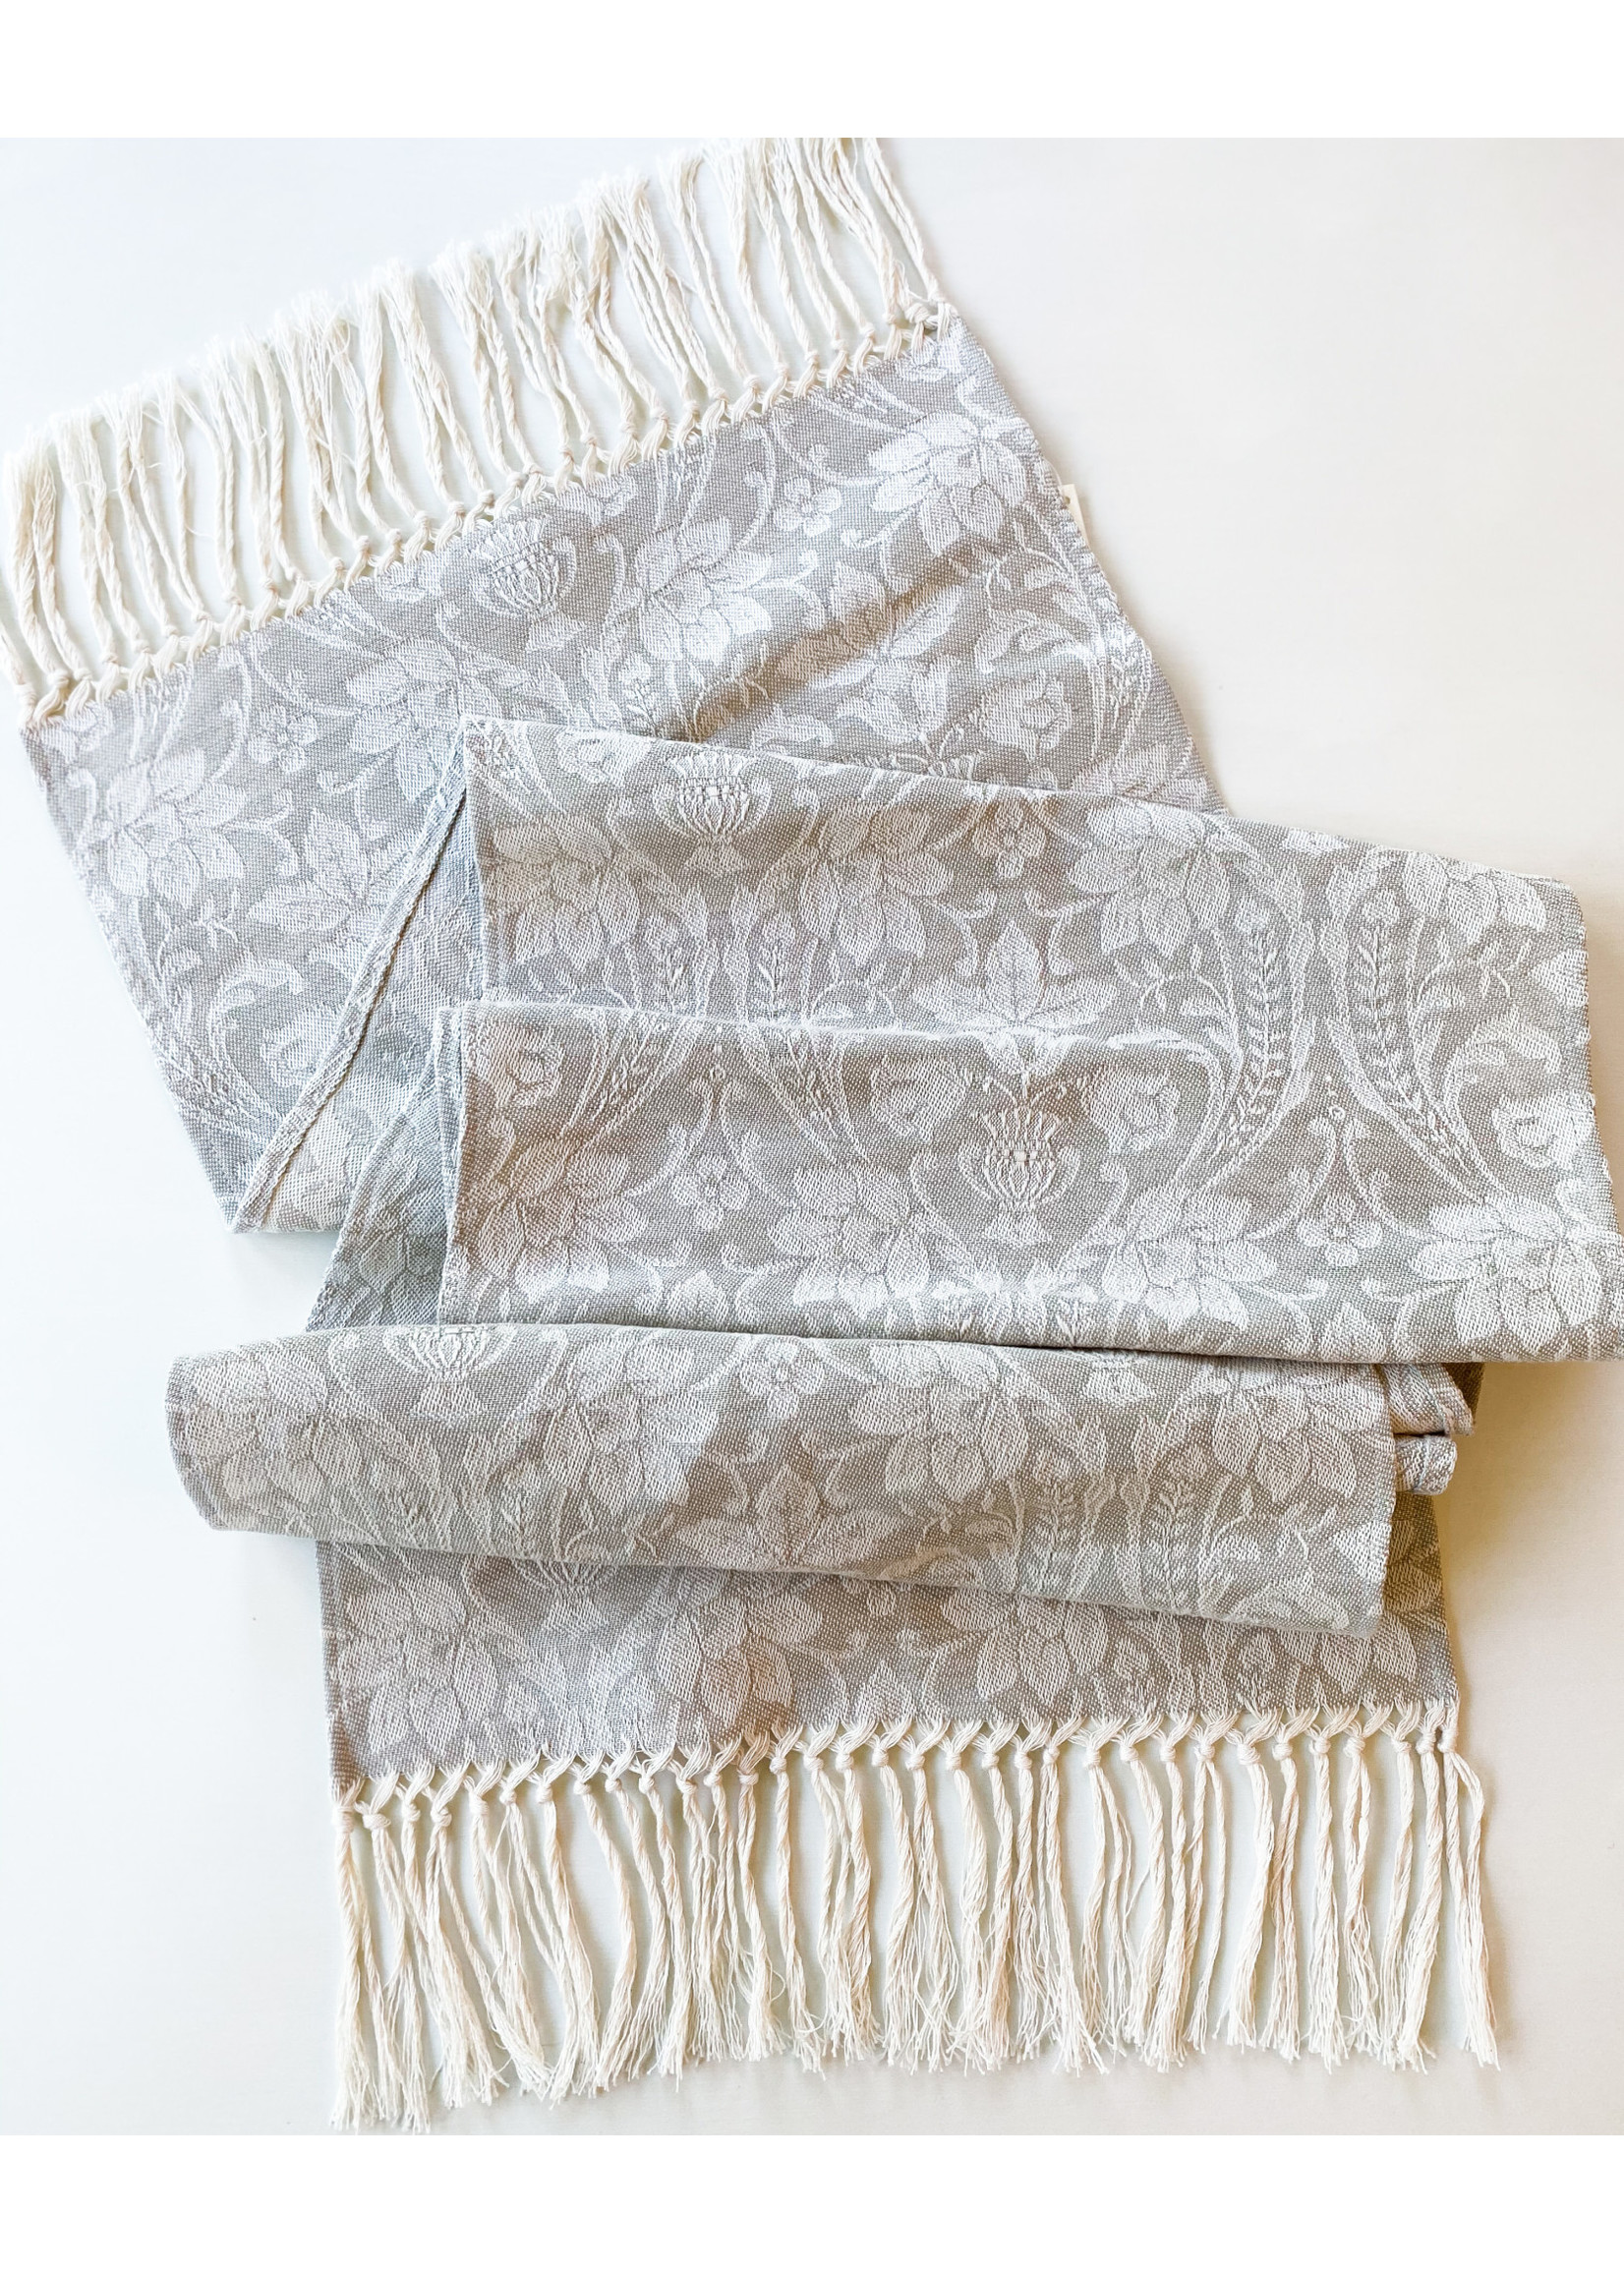 Busatti Runner Donna di Coppe Hand Knotted Fringe Taupe